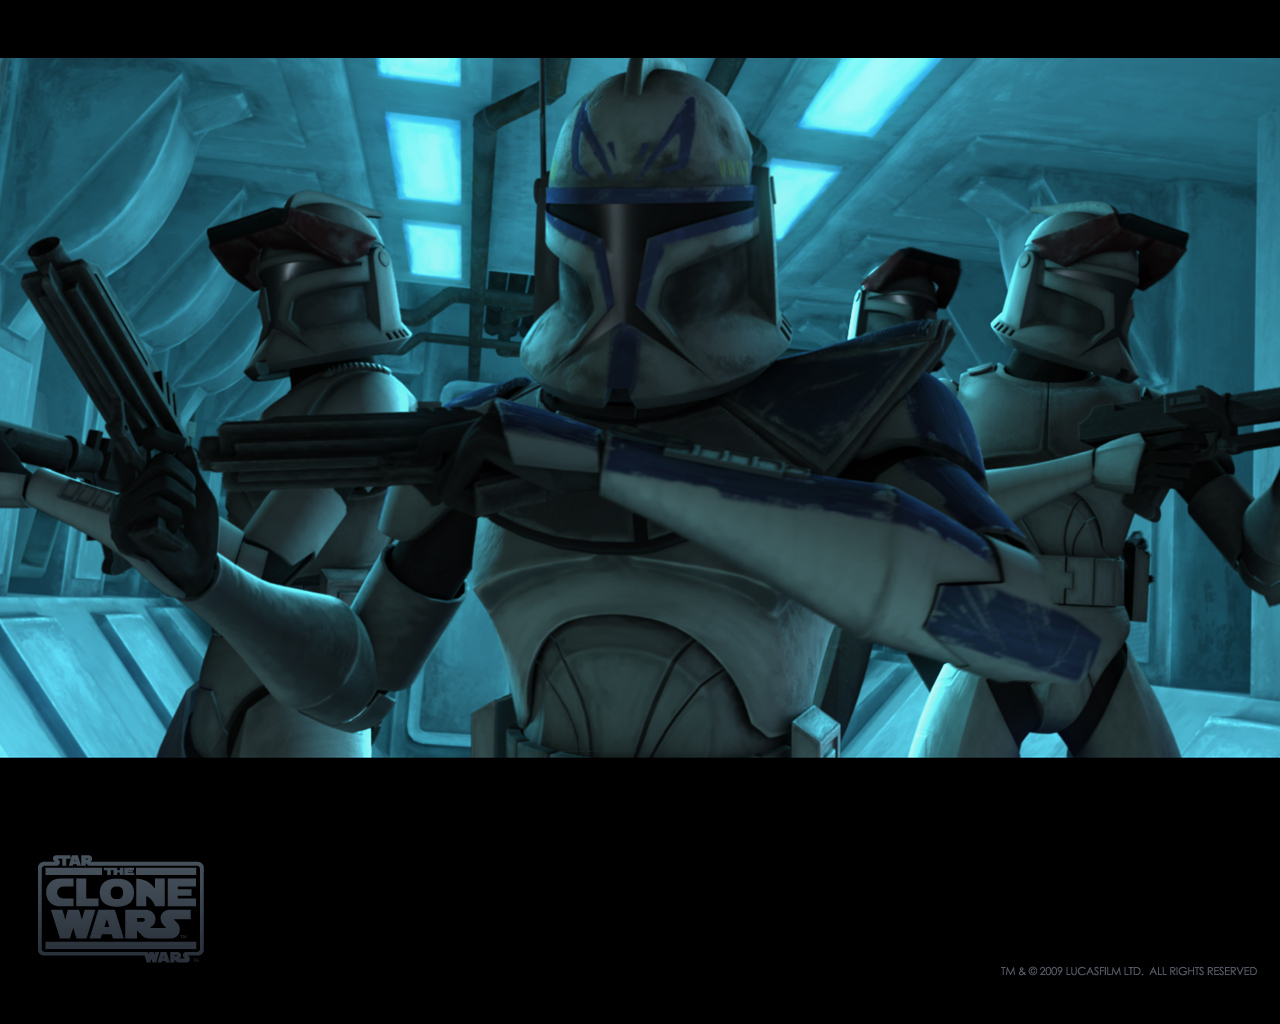 Star Wars Images Clone Troopers Hd Wallpaper And Background Photos